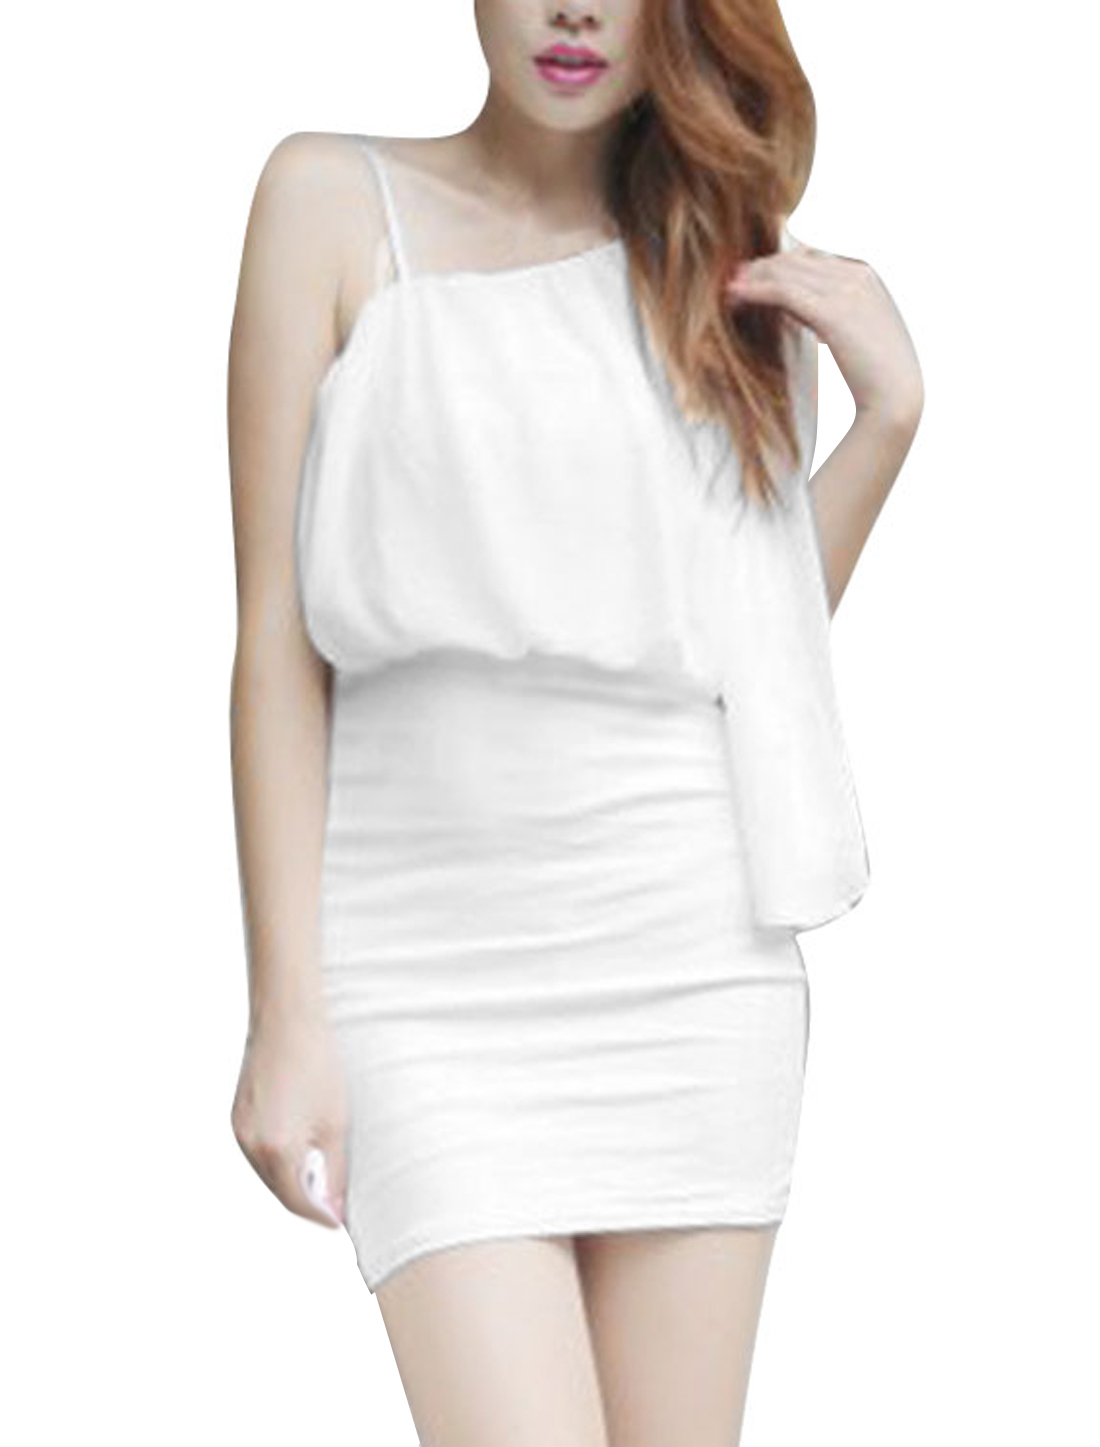 XS White Skinny Fit Stretchy Style One Shoulder Women Hot Fashion Dress